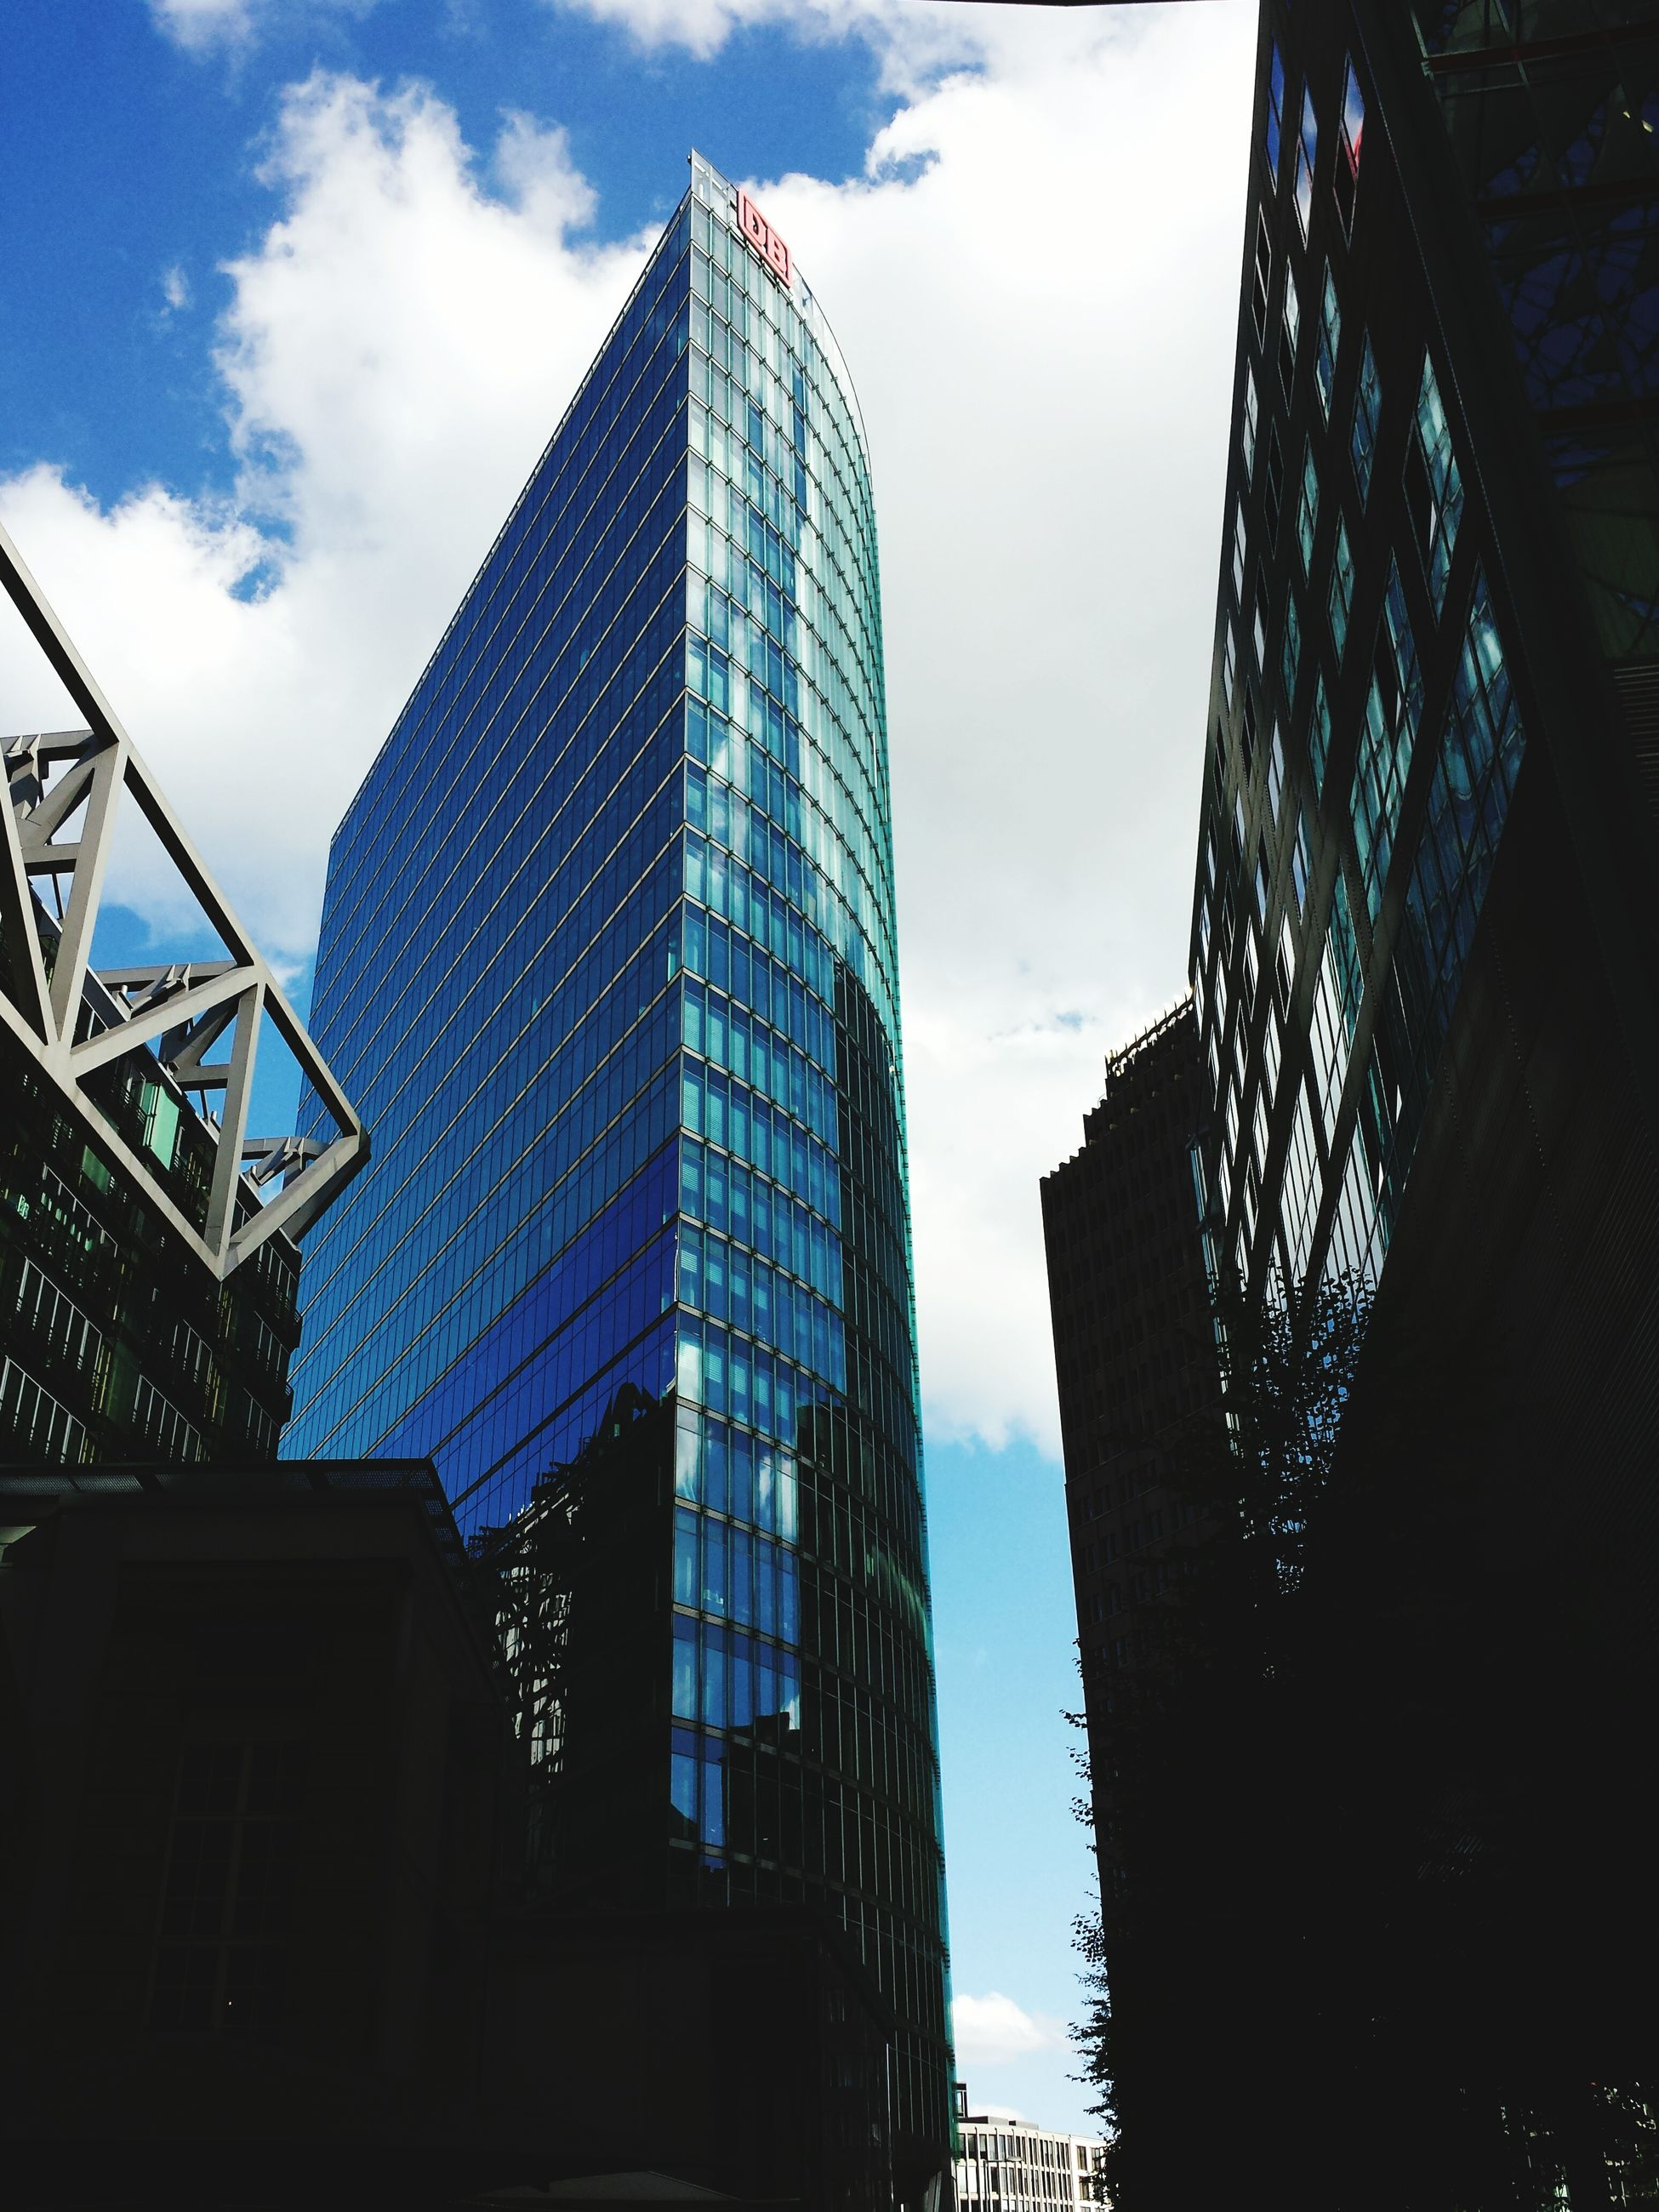 architecture, built structure, building exterior, skyscraper, low angle view, tall - high, modern, tower, city, office building, sky, capital cities, glass - material, tall, travel destinations, cloud - sky, famous place, reflection, development, international landmark